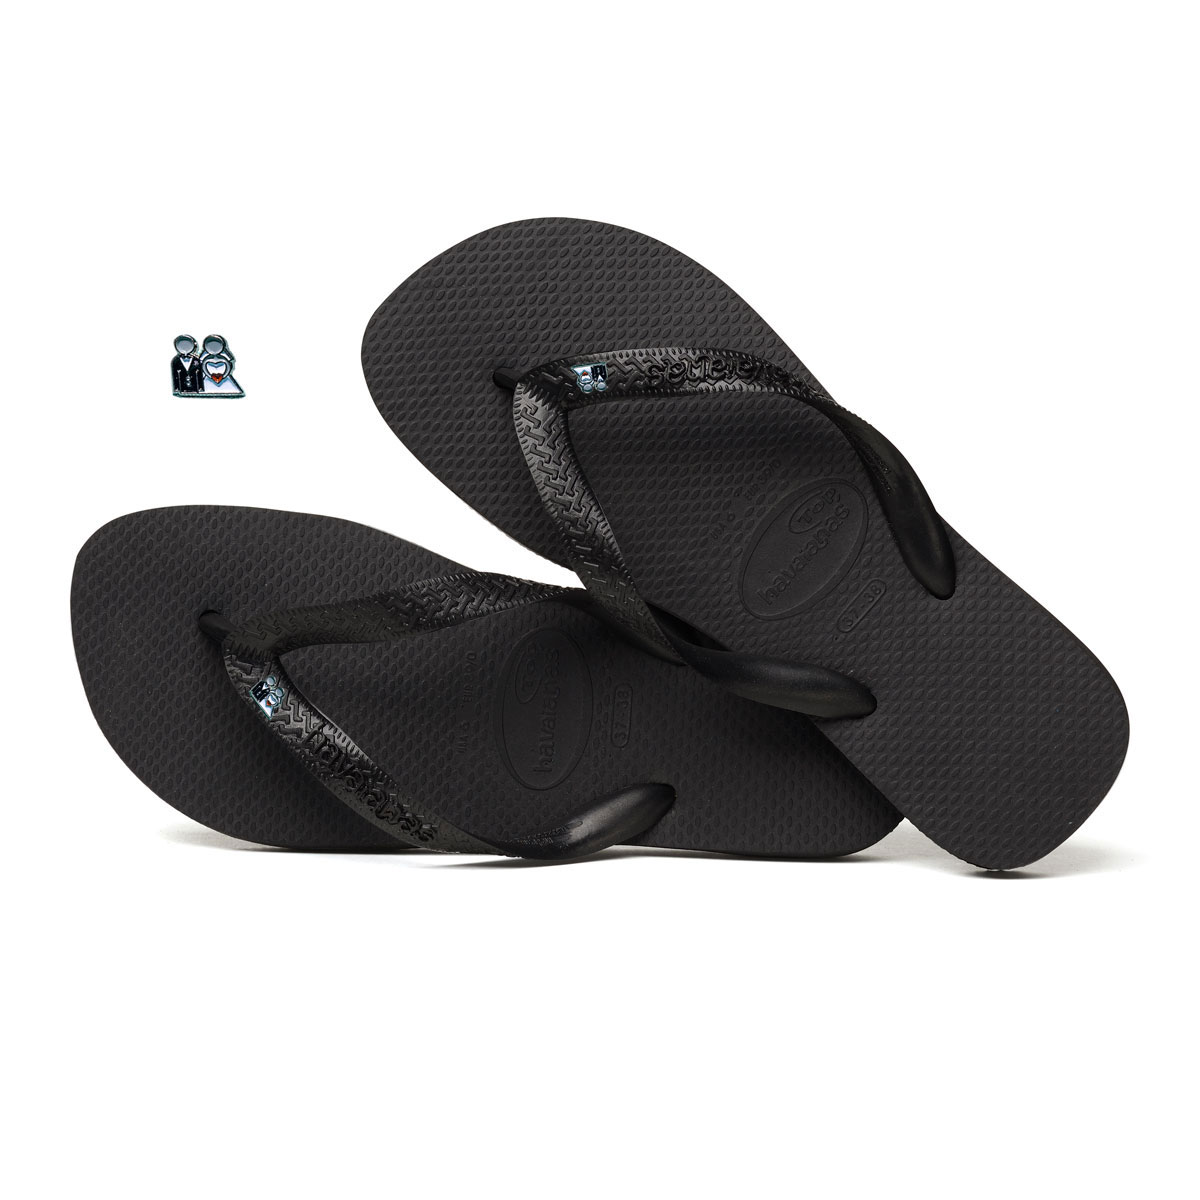 Silver Bride & Groom Charm Havaianas Top Black Wedding Flip Flops